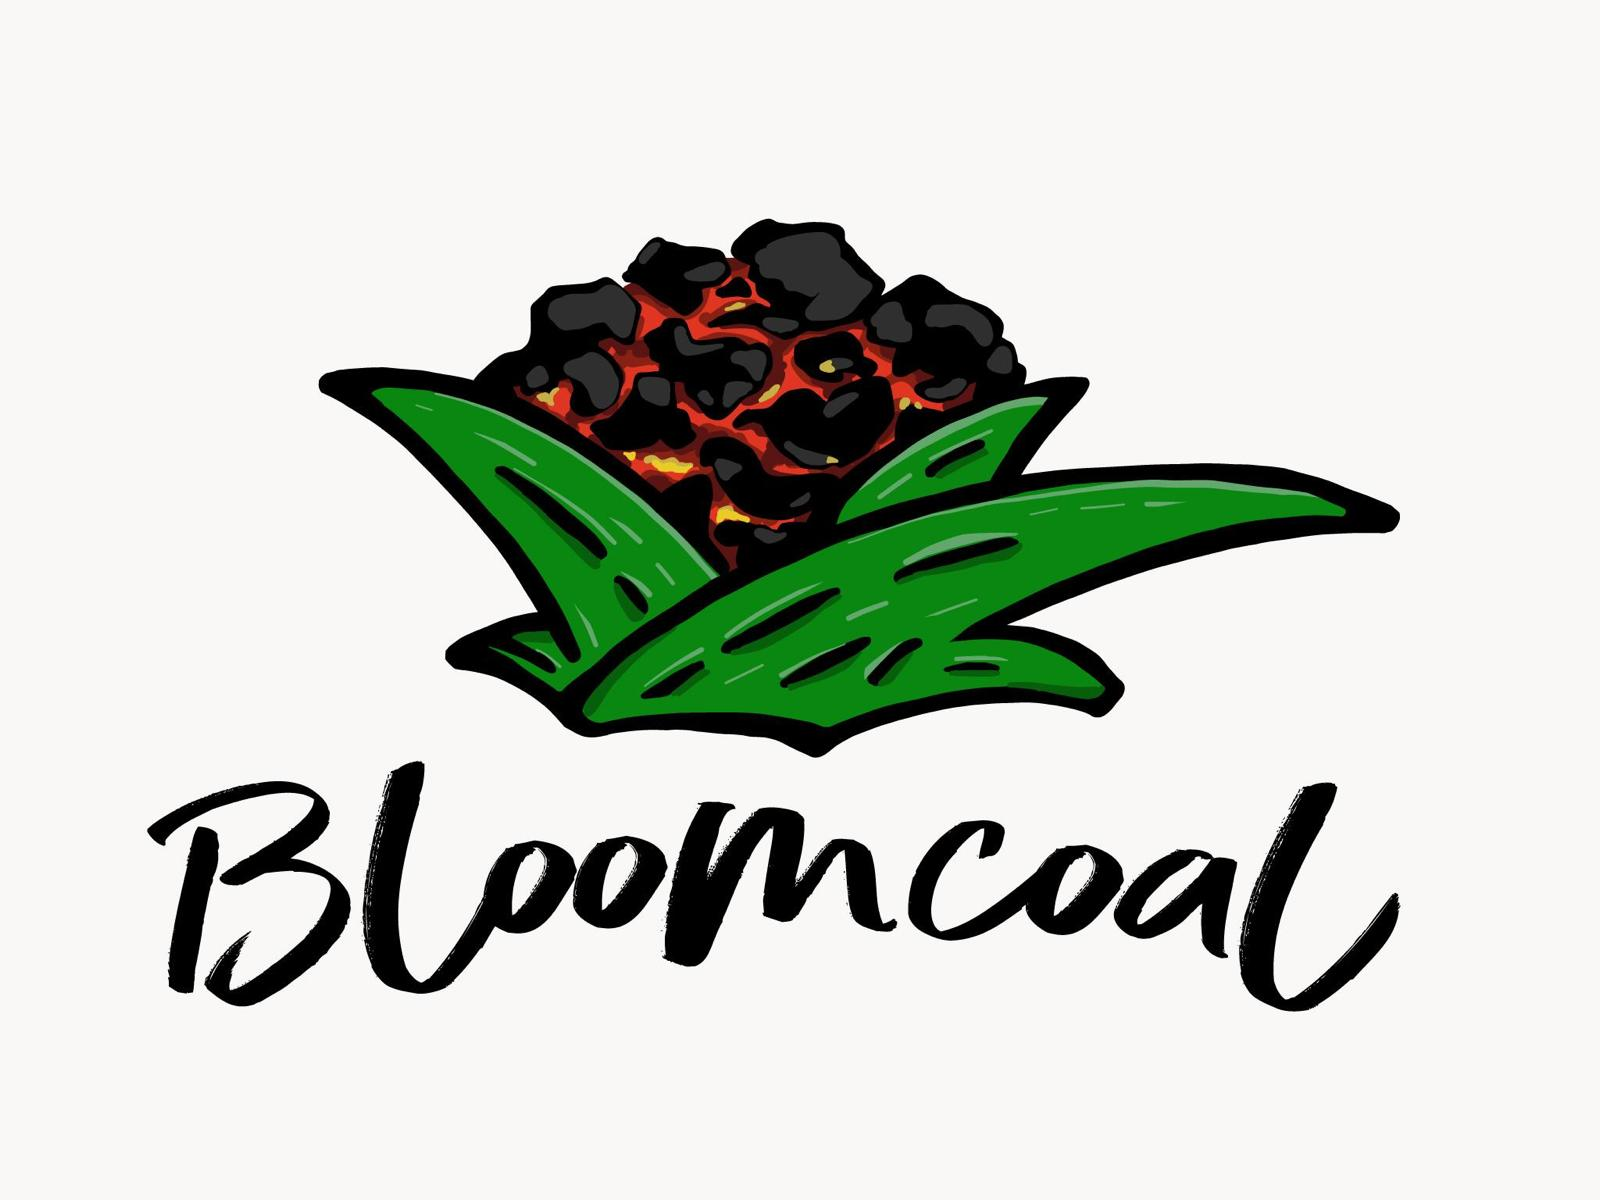 Bloomcoal